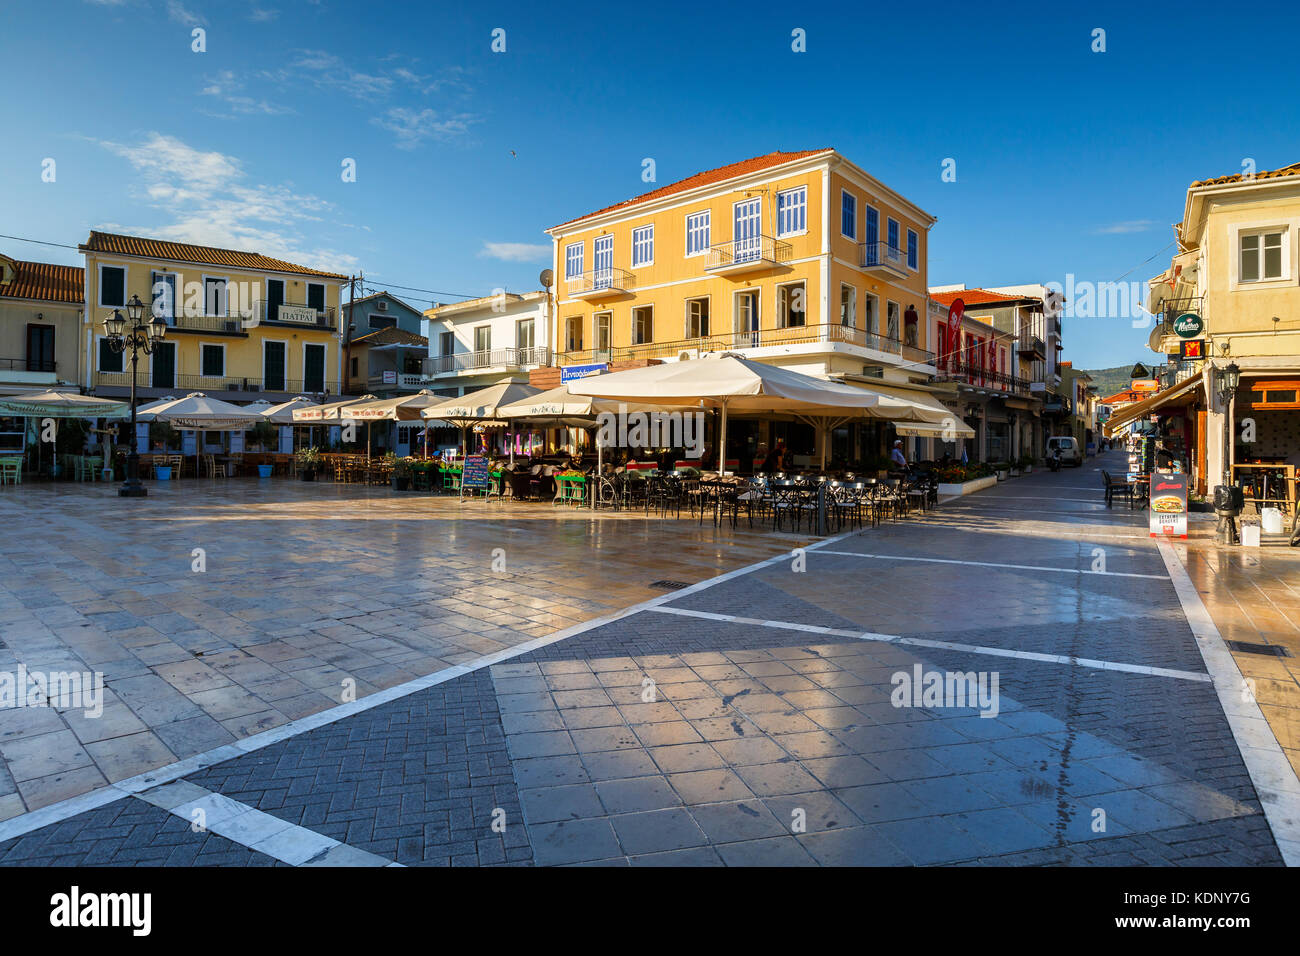 Coffee shops and restaurants in the main square of Lefkada town, Greece. Stock Photo